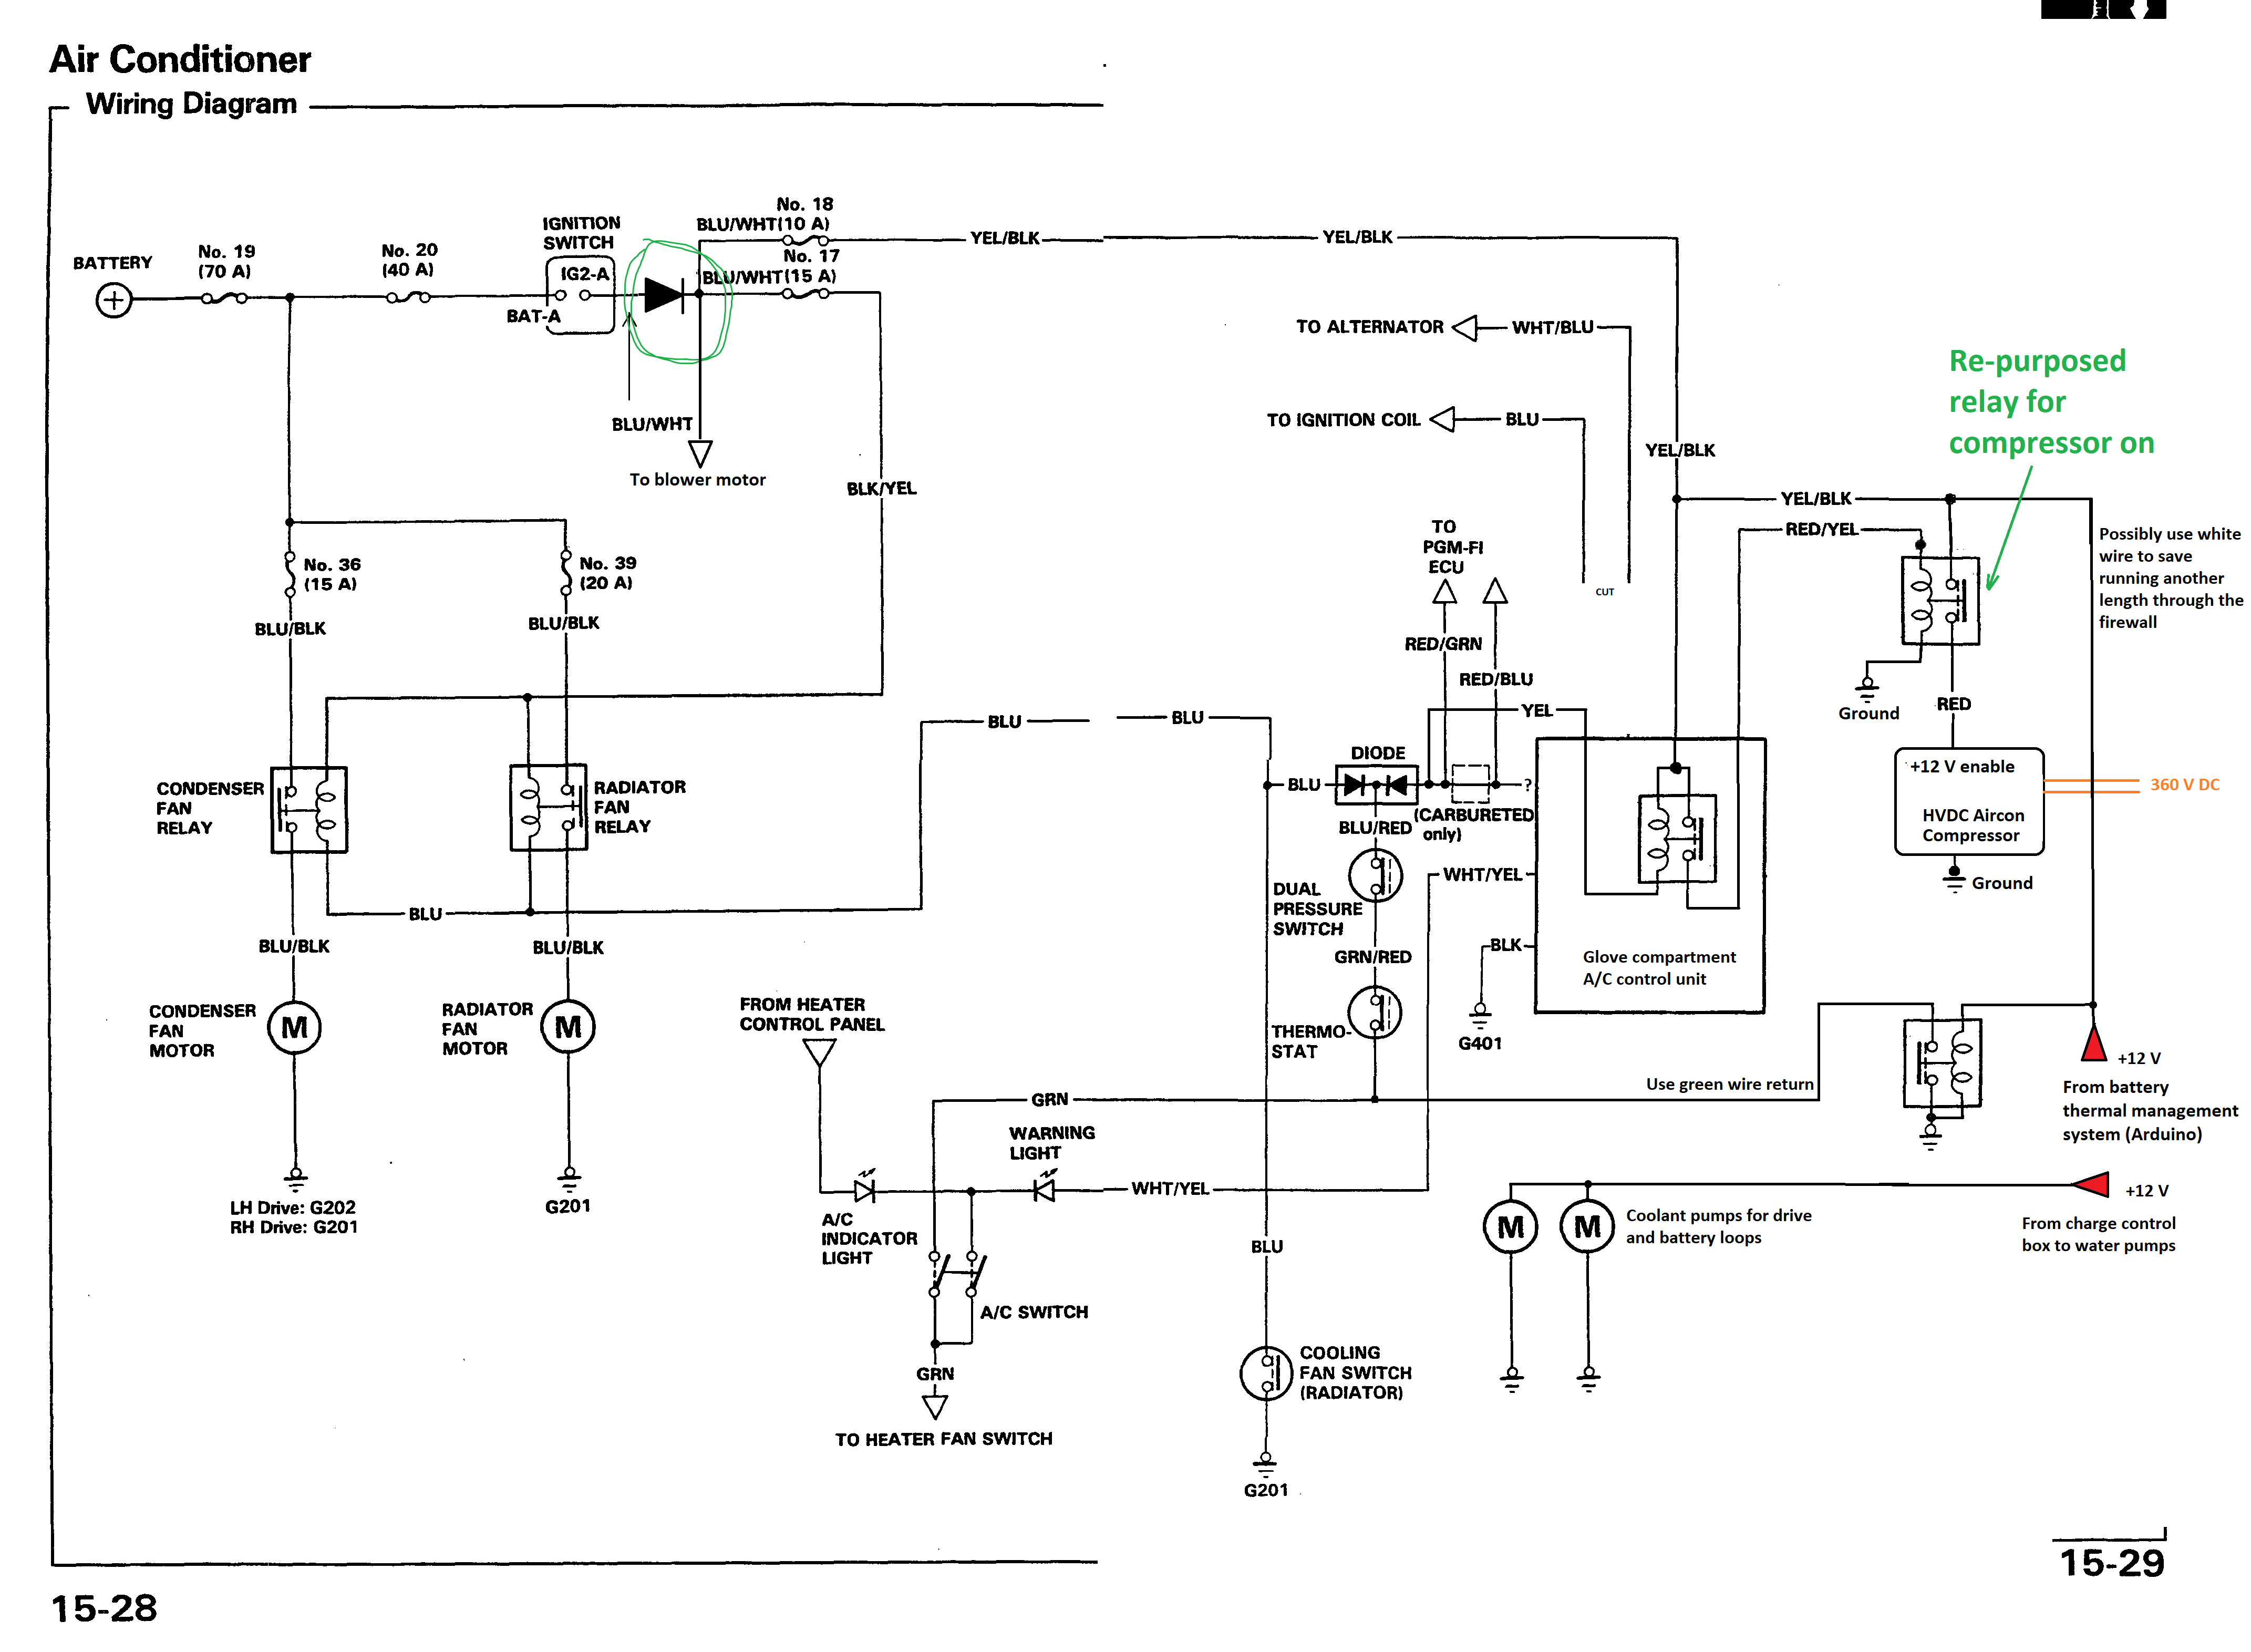 new Aircon wiring3.png